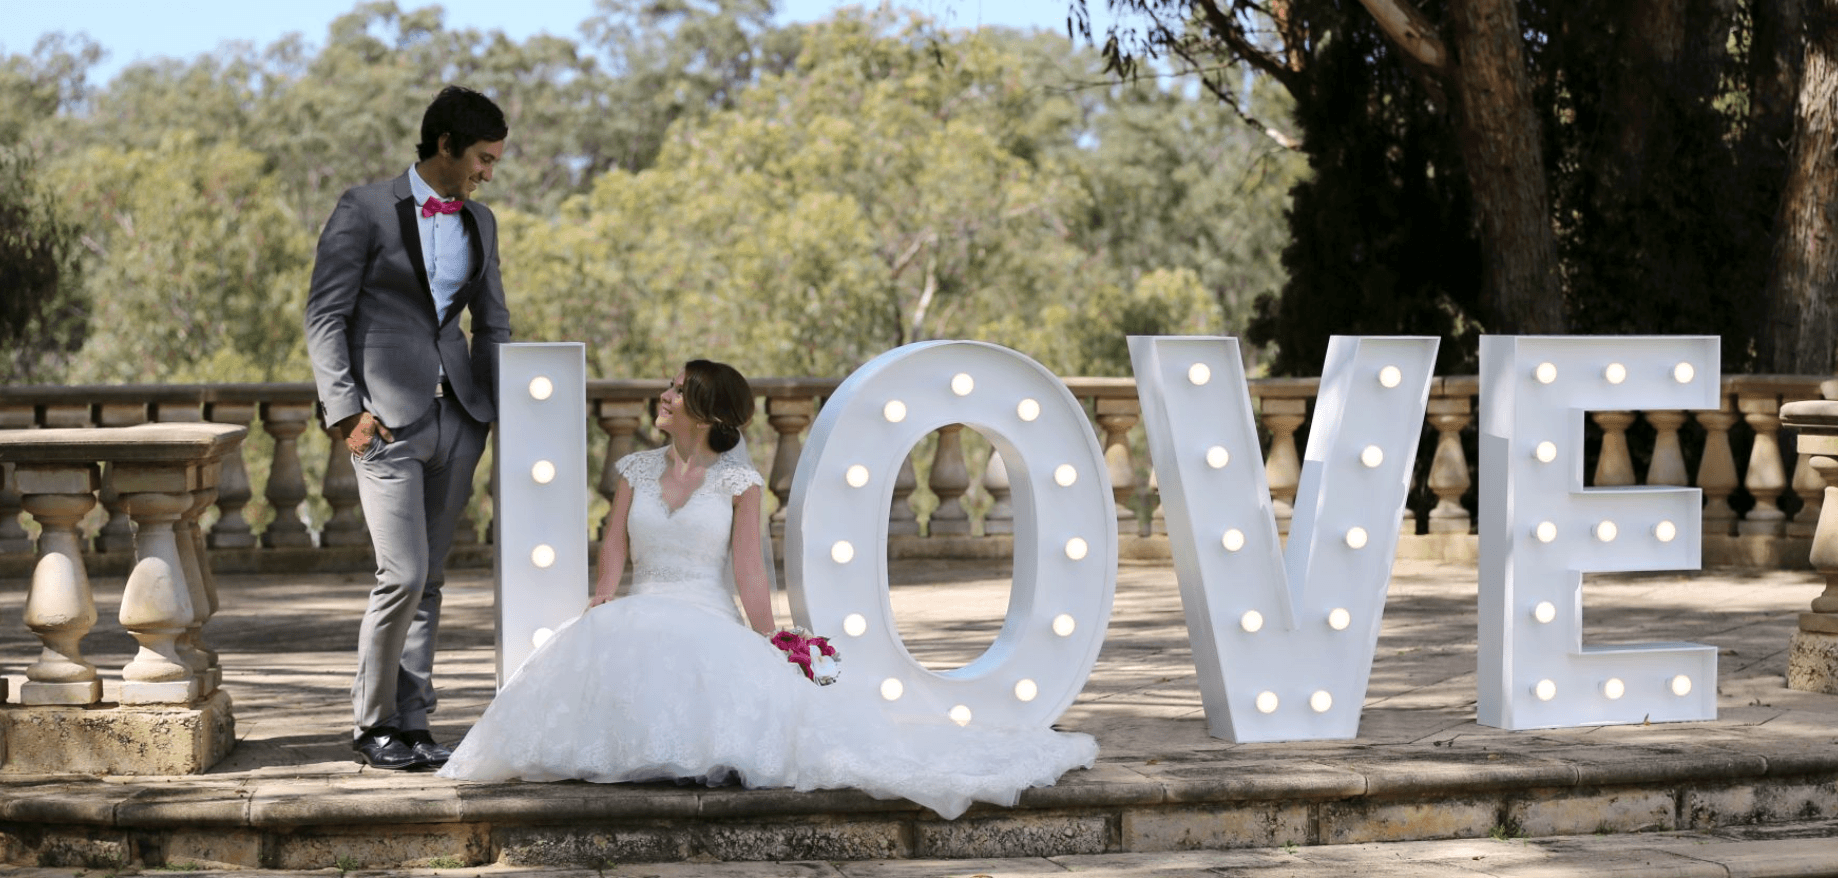 marquee light letters and symbols